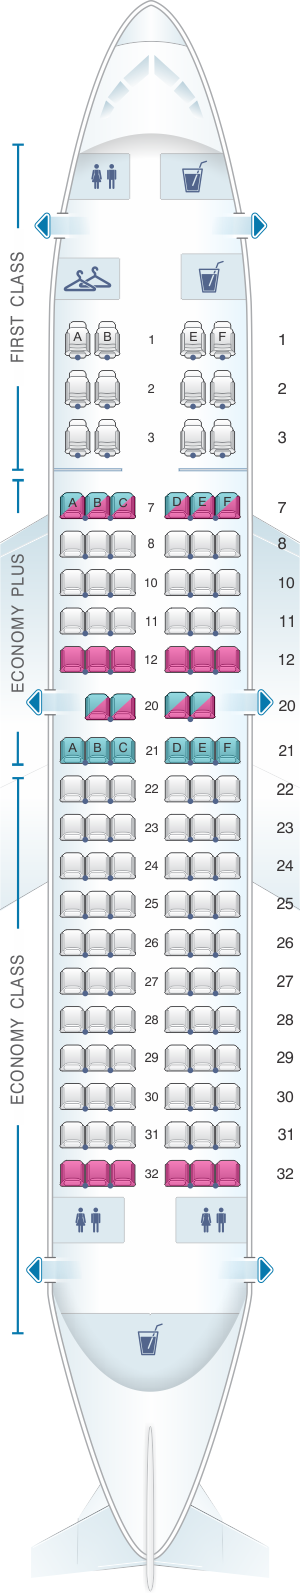 Seat map for United Airlines Boeing B737 700 - version 1